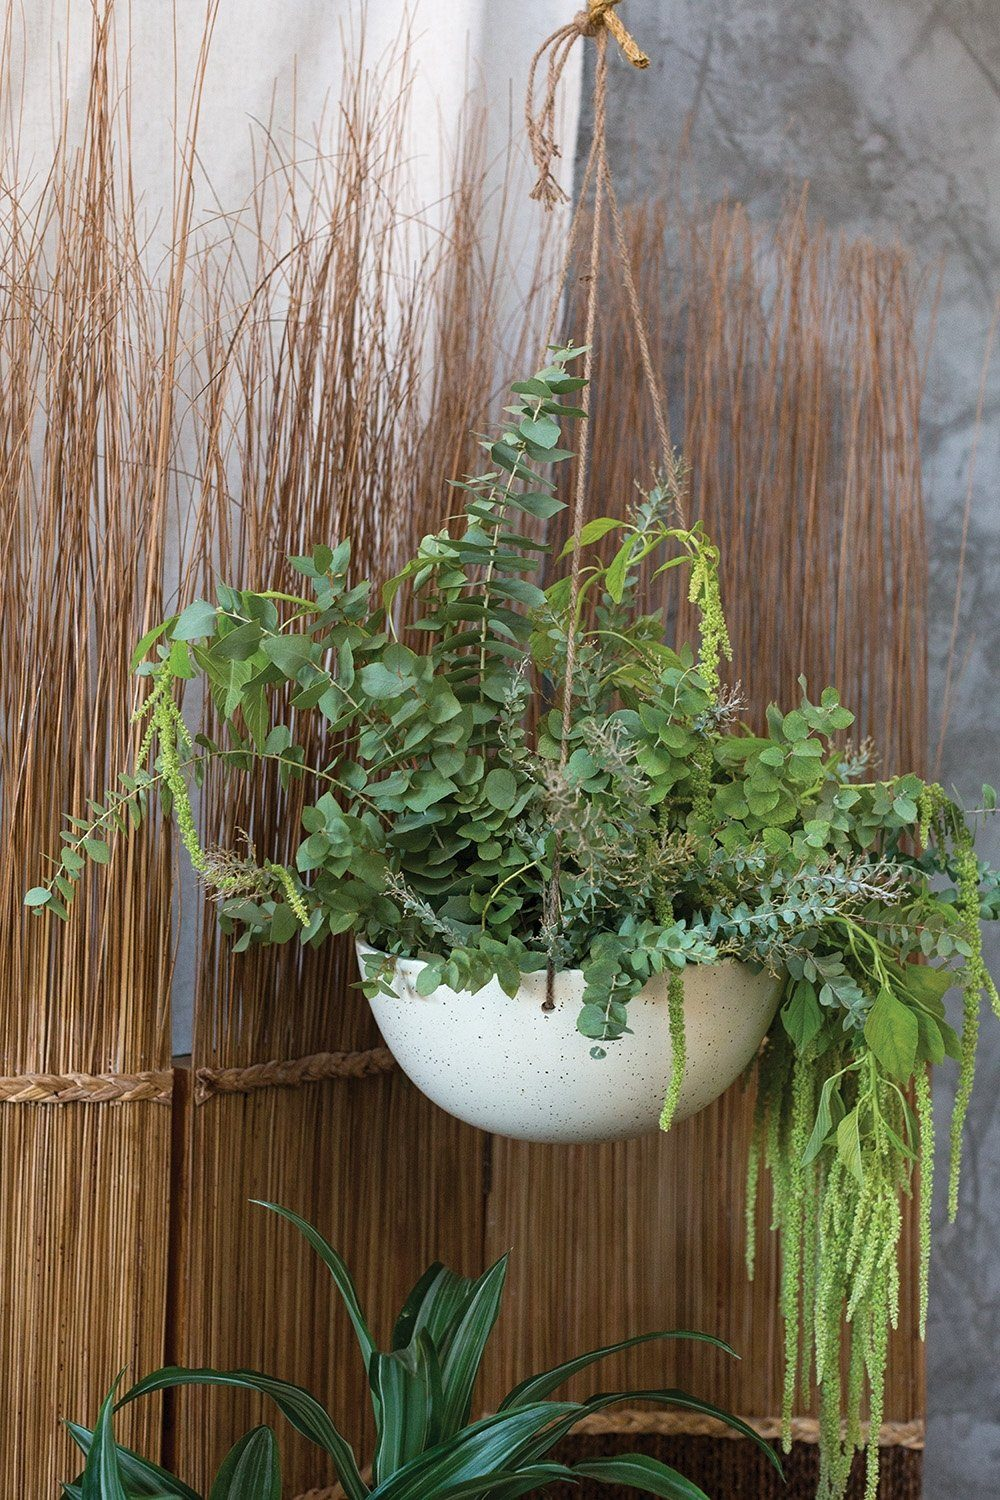 Sabel Ceramic White Hanging Pot - Indoor Bowl Planter with Rope